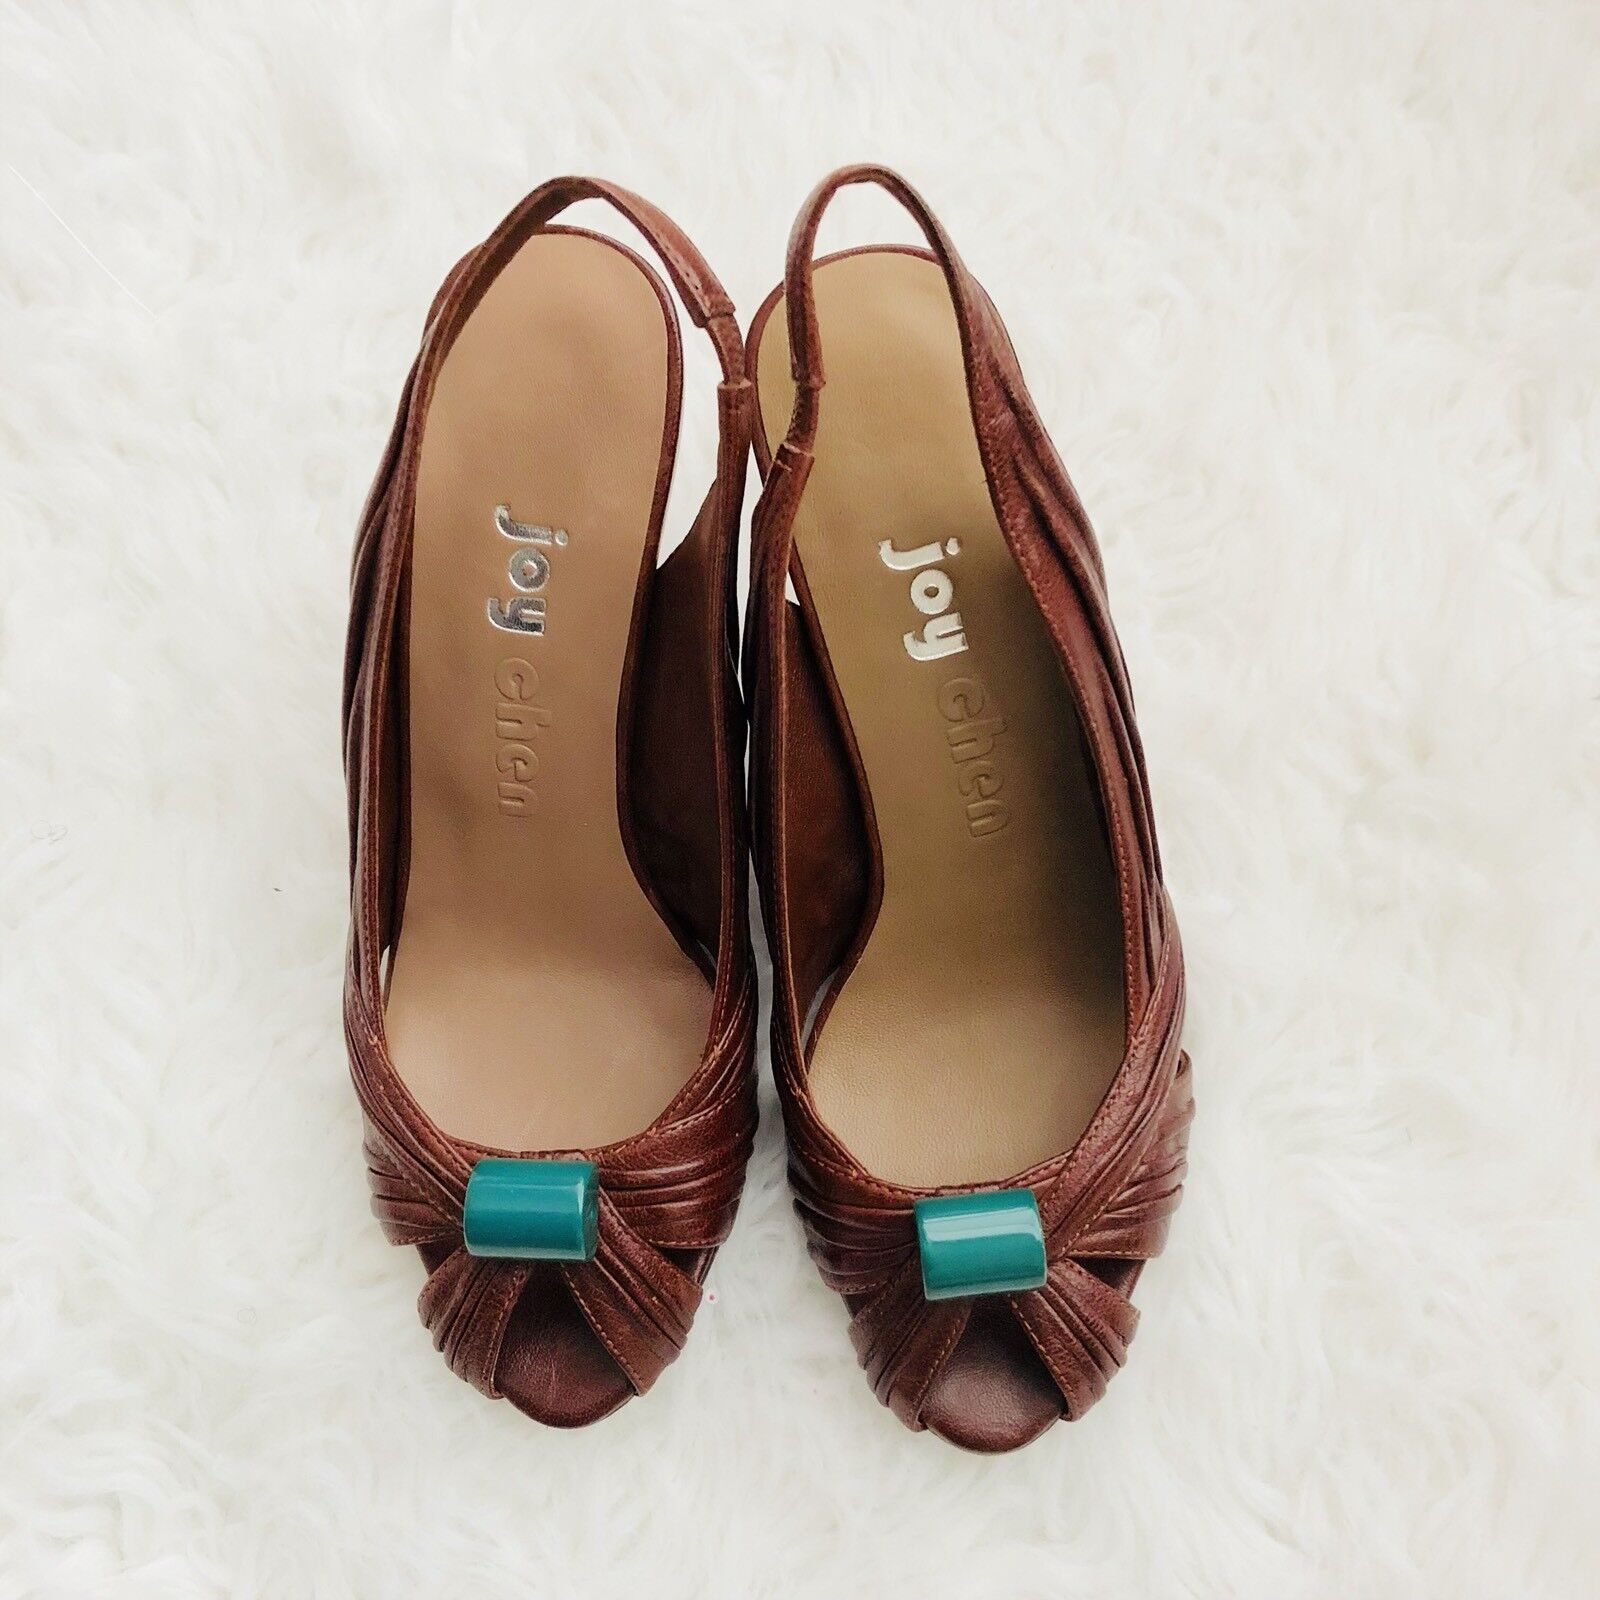 JOY CHEN Brown Turquoise Leather Peep Toe Slingback shoes Size 6.5